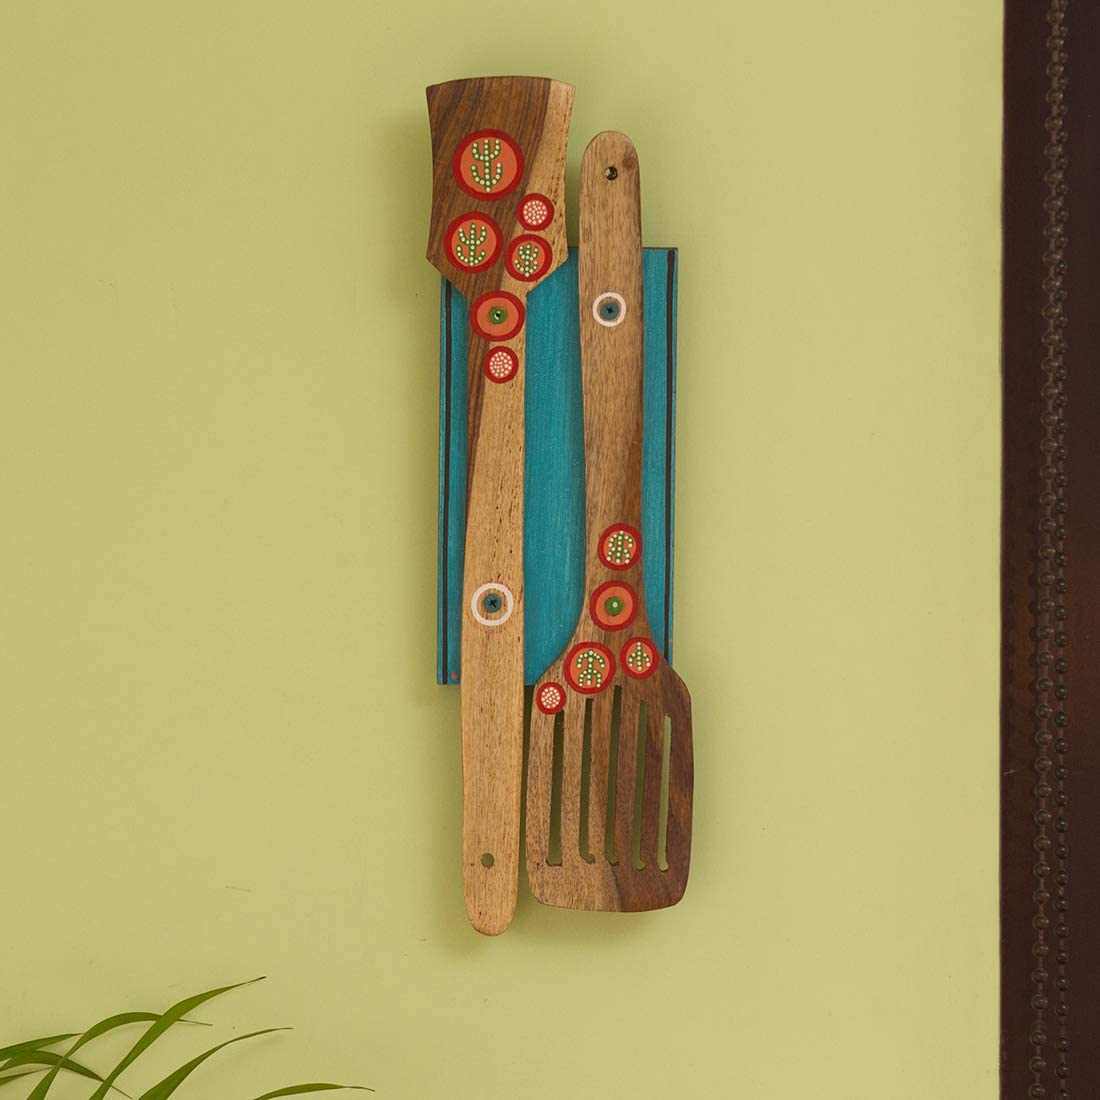 ExclusiveLane 'Desert Spatulas' Hand-Painted Wall Décor Hanging in Mango & Pine Wood - Kitchen Wall Hanging Décor for Living Room Bedroom Home Decoration Wall Decoration Items Wall Decore Home Décor